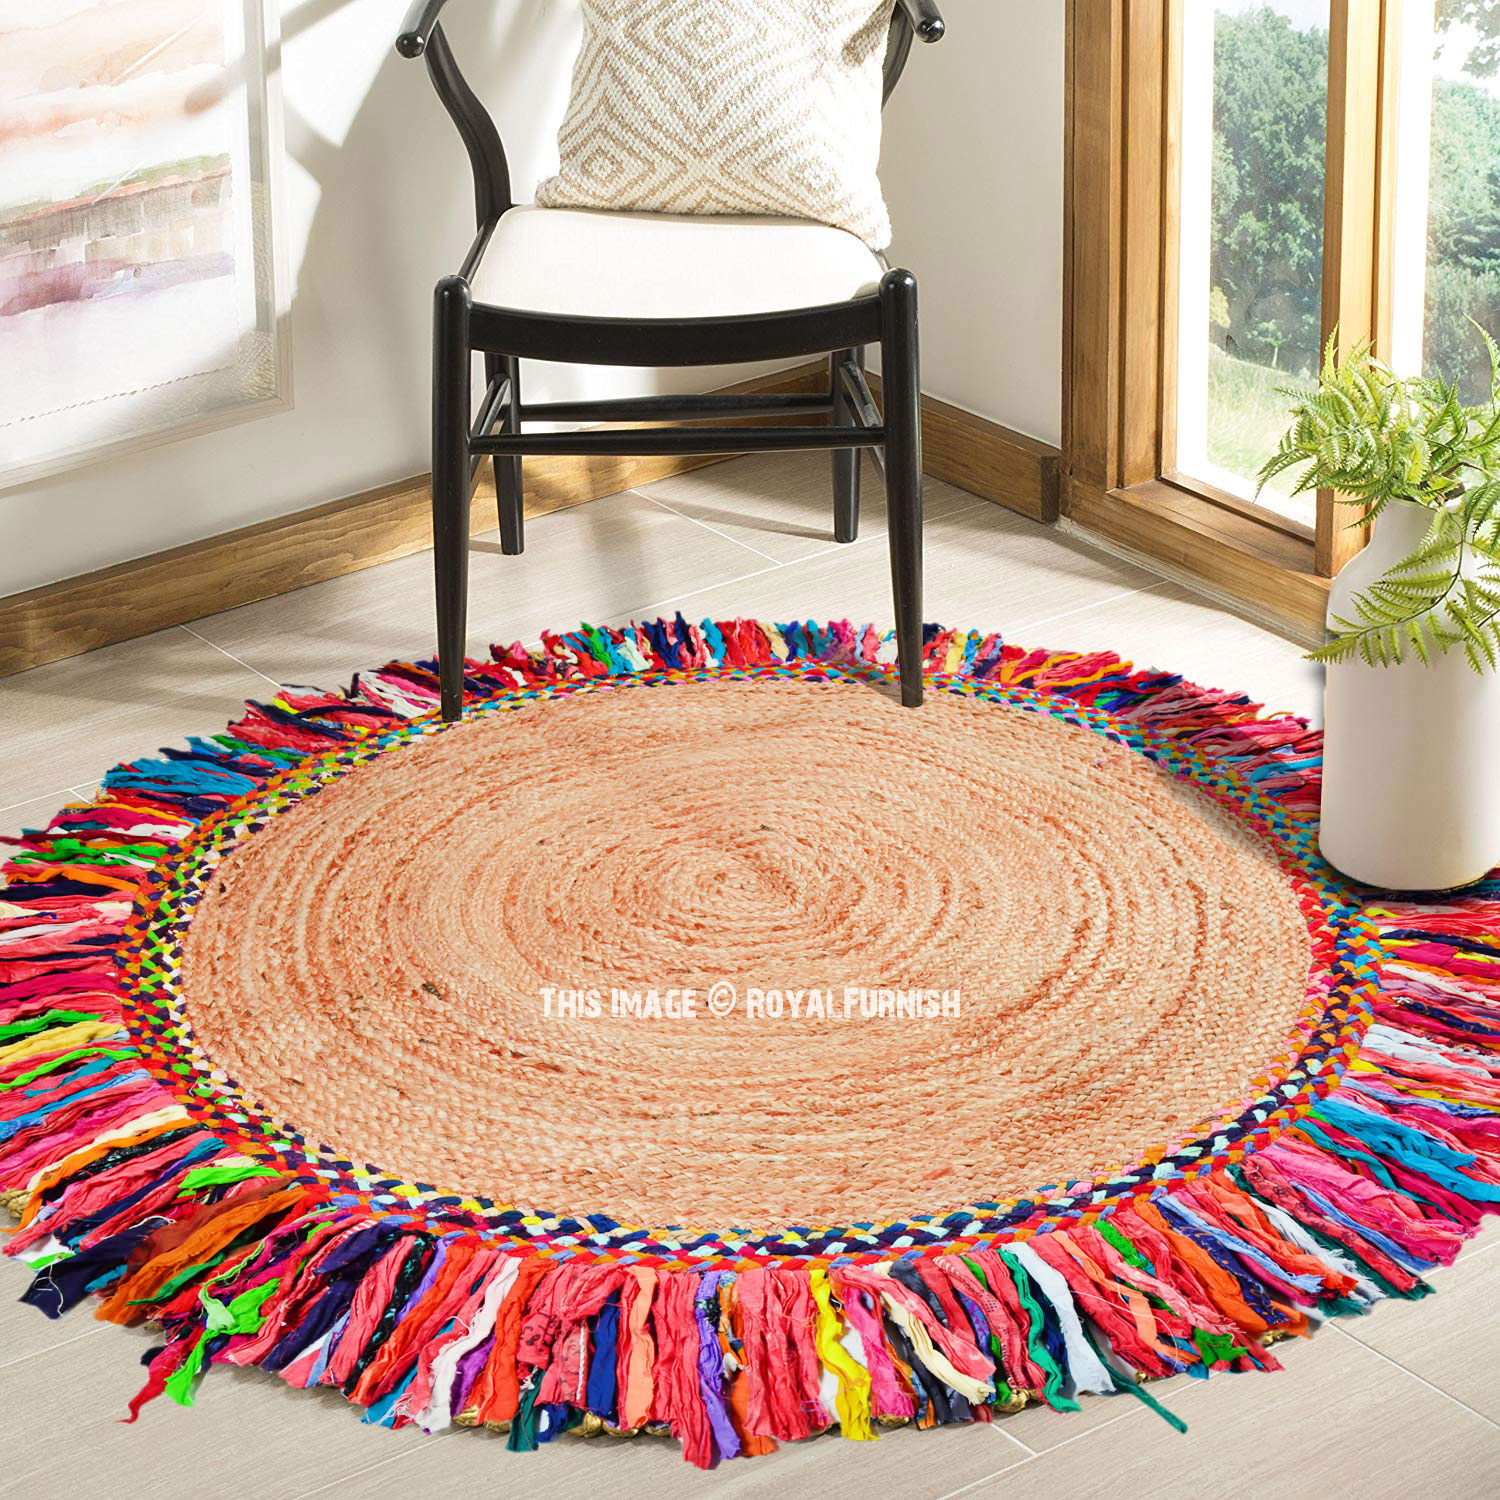 Astonishing Sisal Jute Braided 4 Ft Round Colorful Fringed Indoor Area Rug Alphanode Cool Chair Designs And Ideas Alphanodeonline